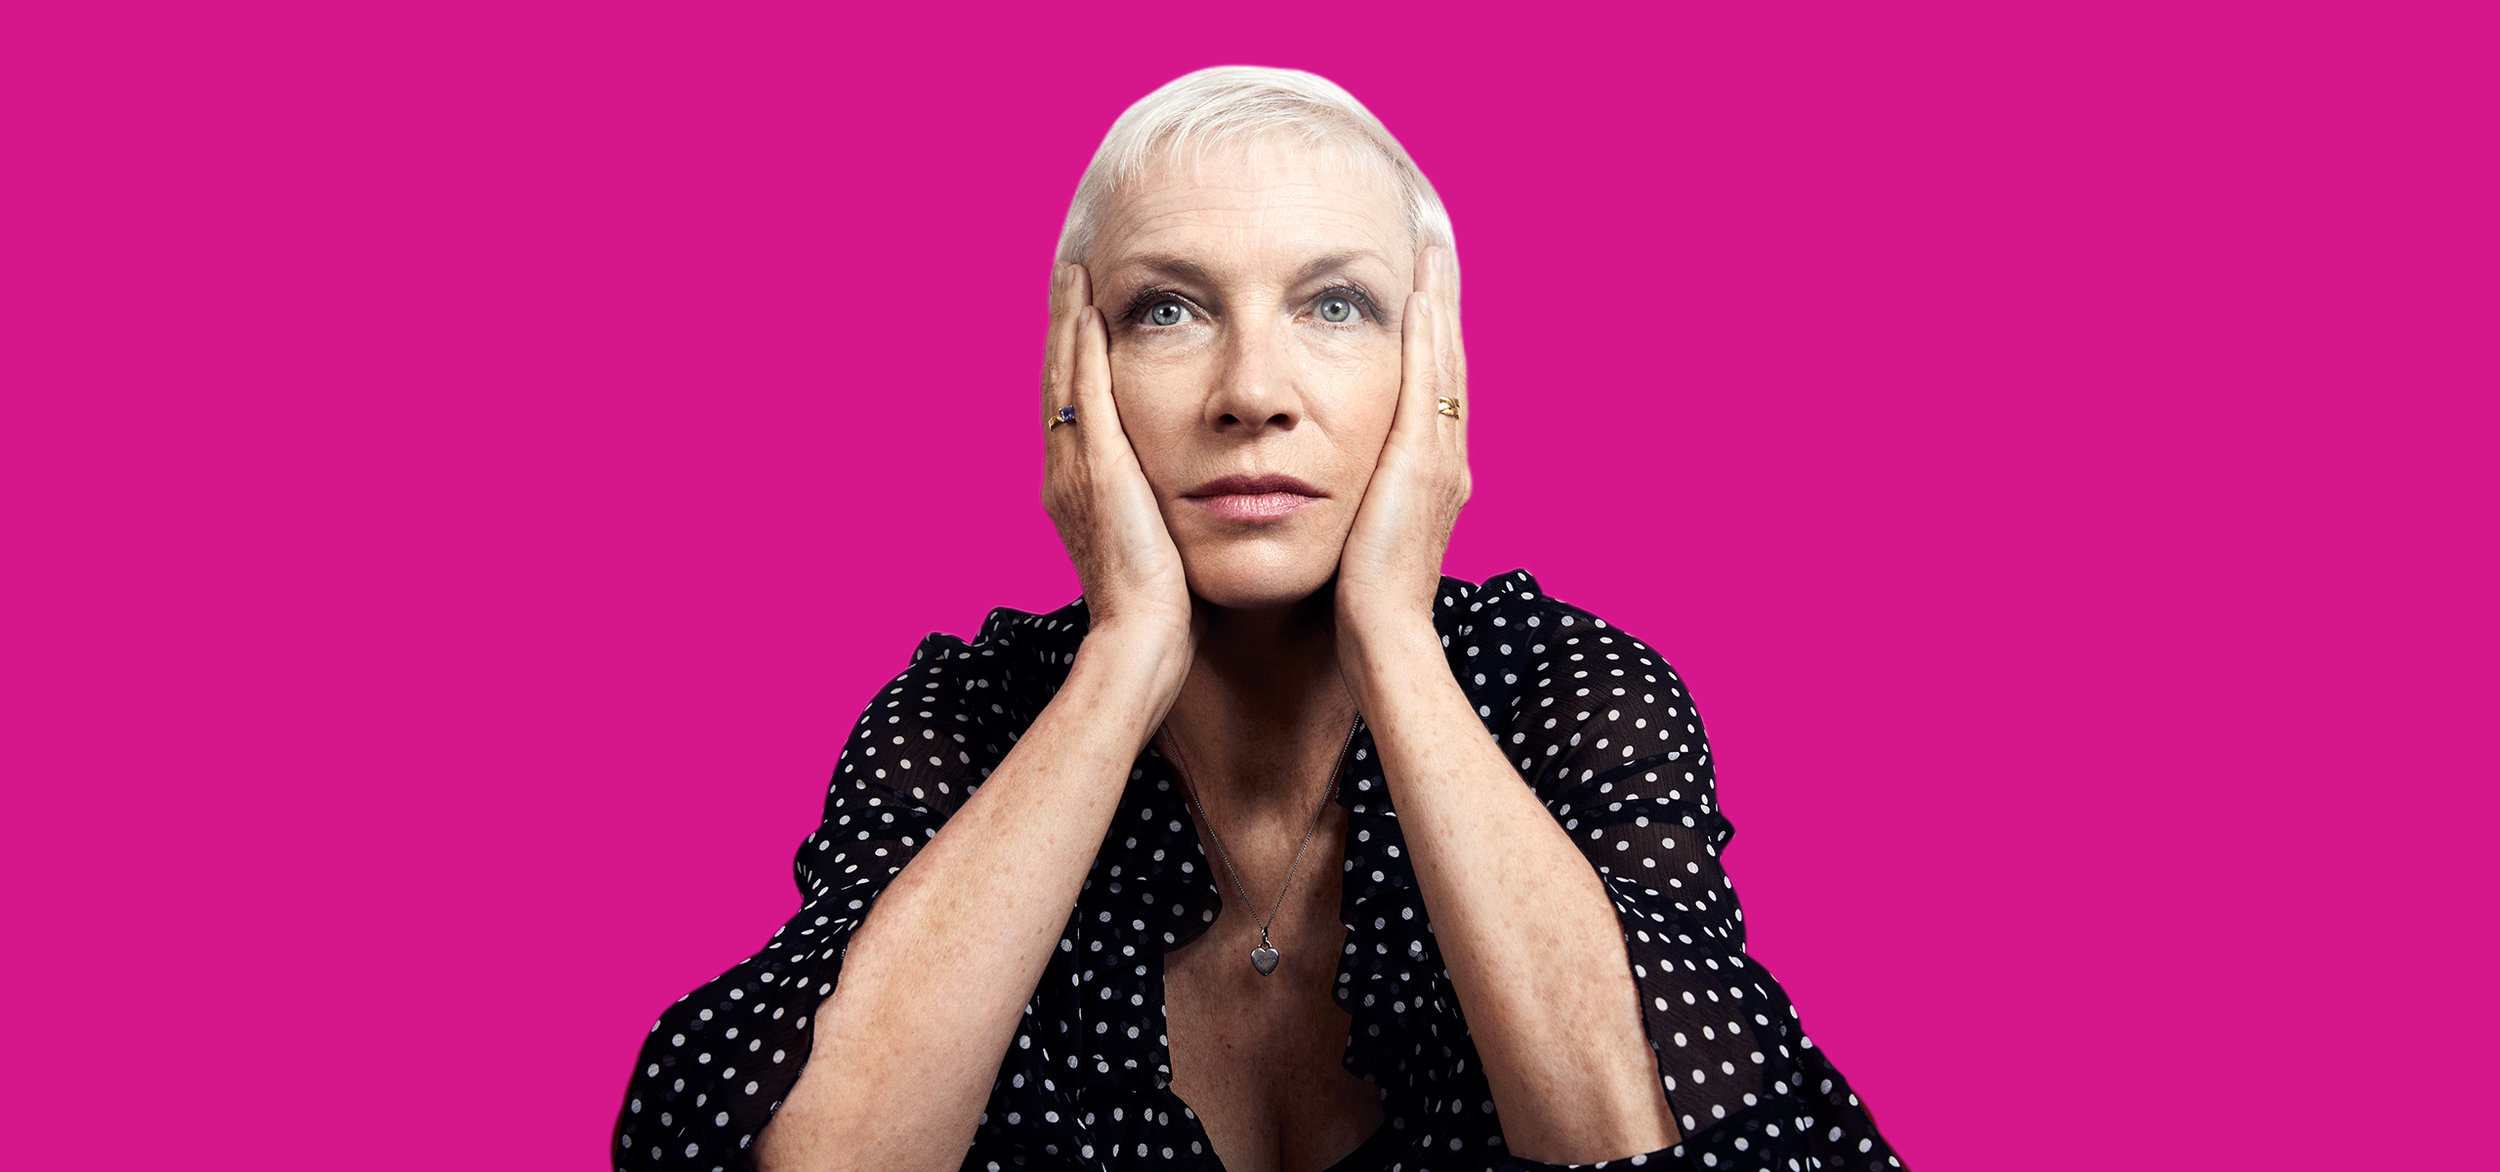 Annie Lennox Tour 2020 Annie Lennox announces An Evening of Music and Conversation in